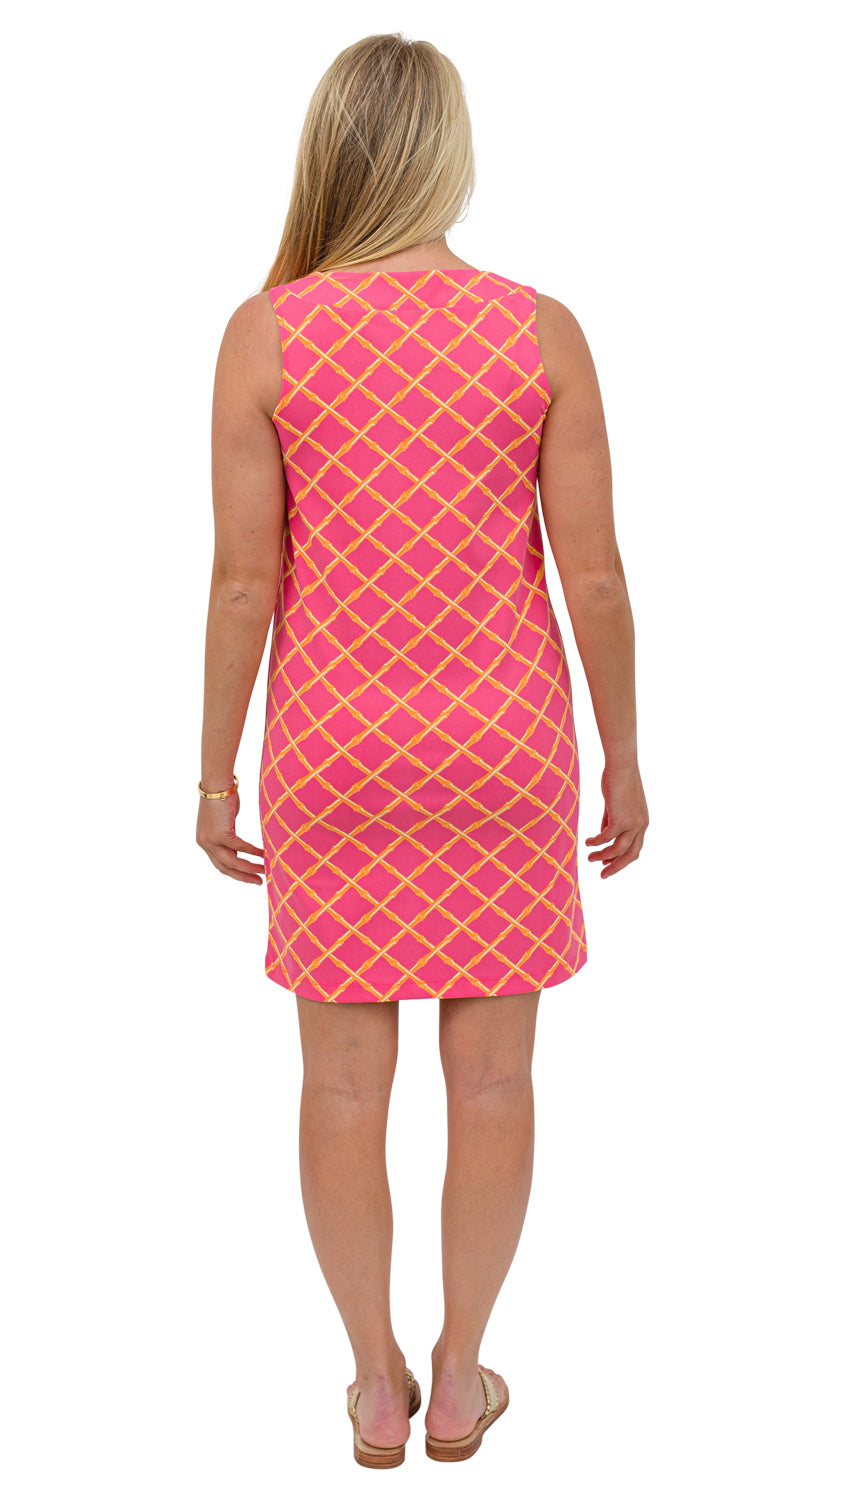 Yacht Club Shift - Pink/Orange Bamboo Lattice